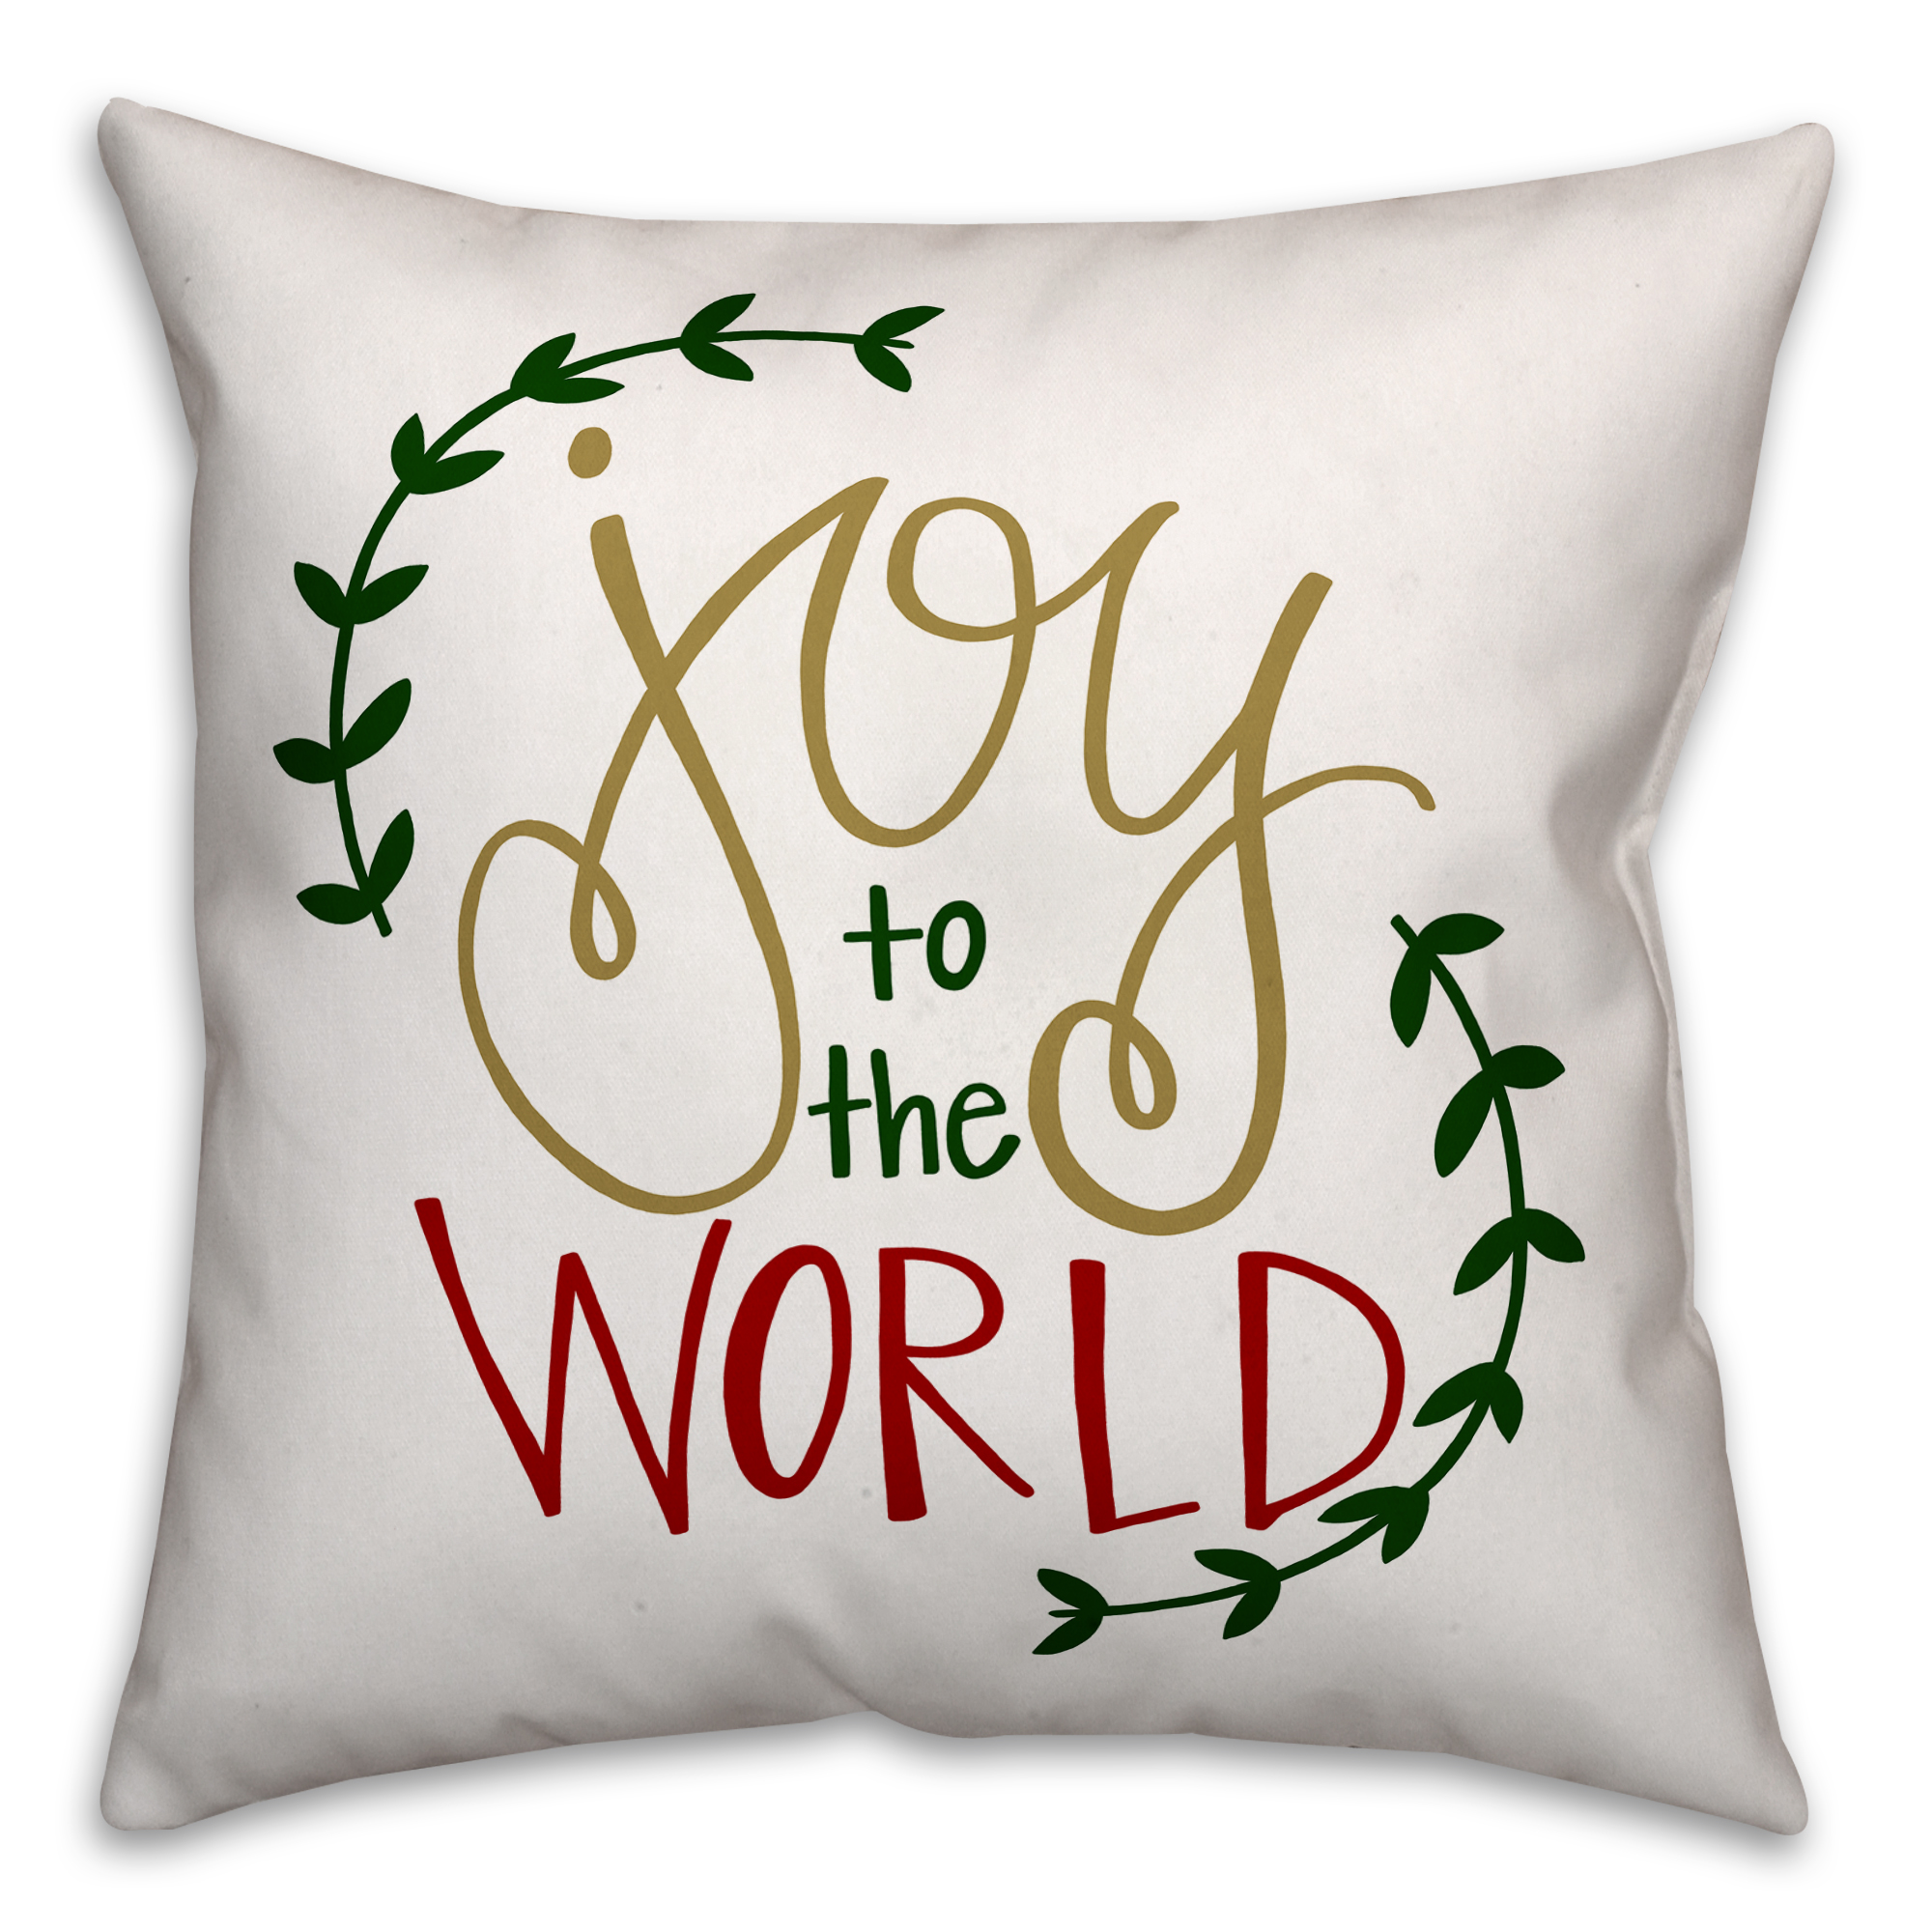 Joy to the World 20x20 Spun Poly Pillow